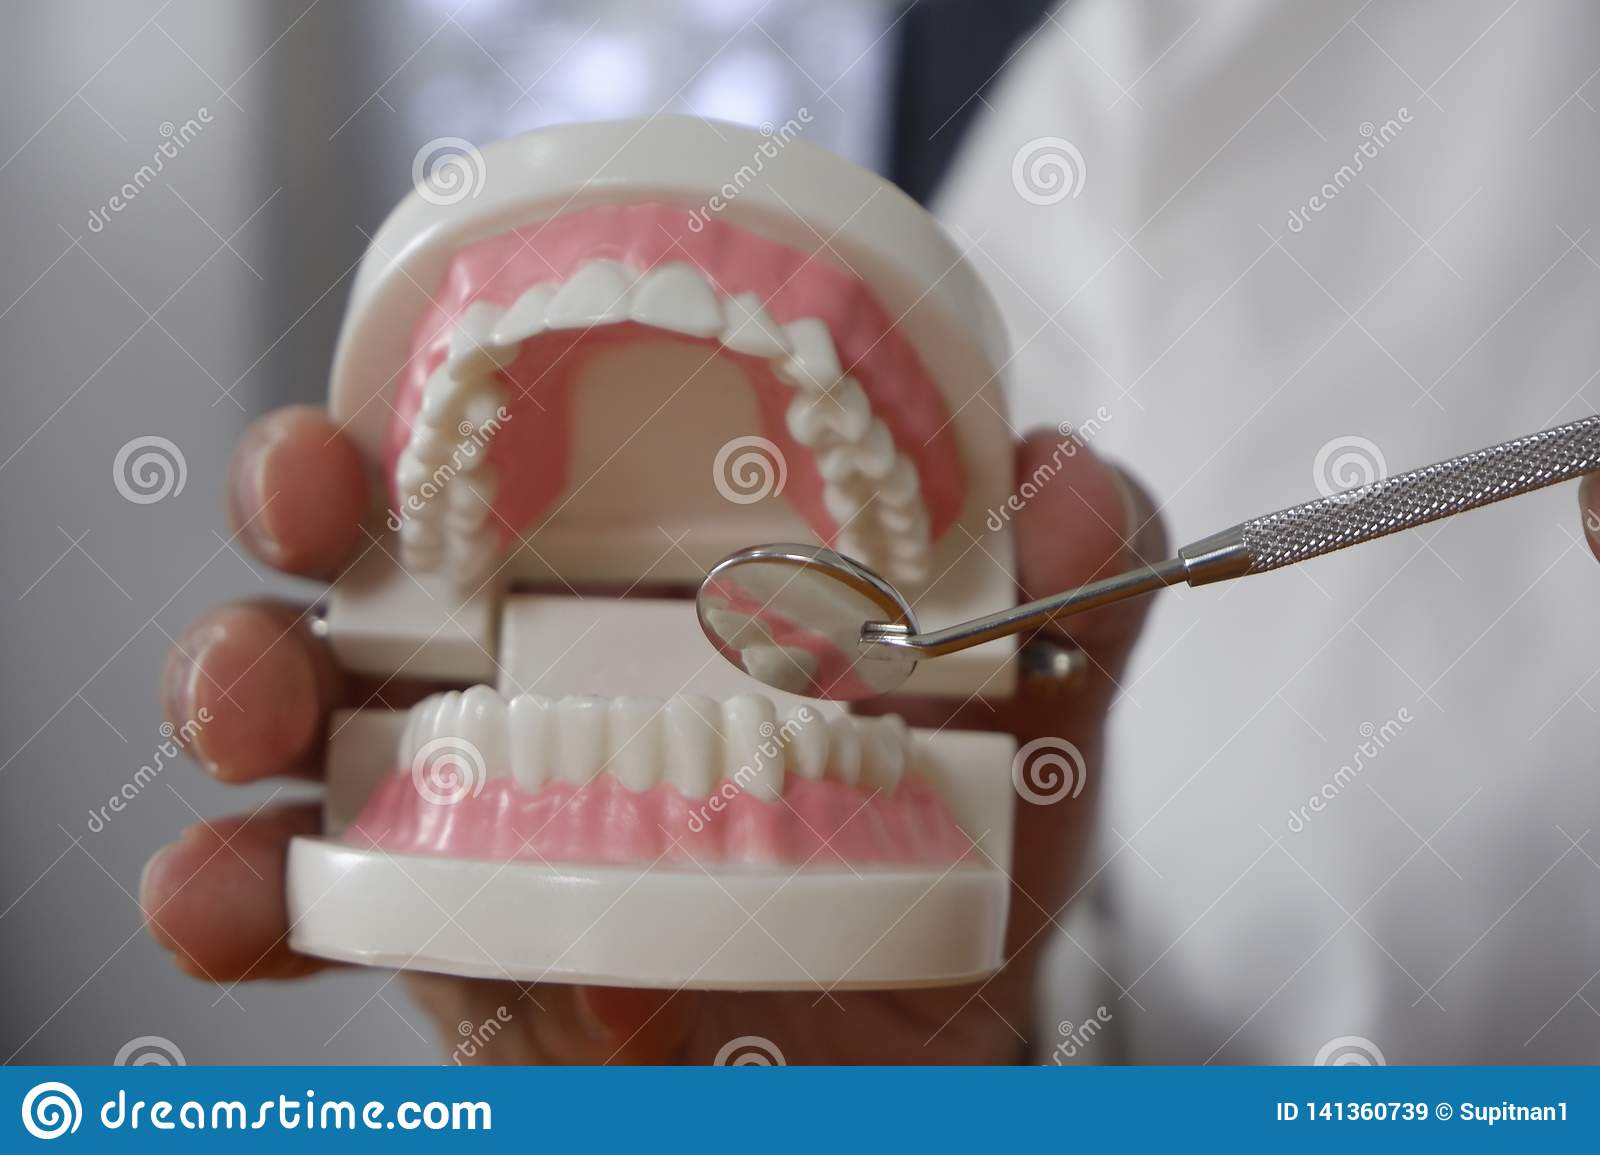 Dentist using tools on teeth model in dental office/ professional dental clinic, dental and medical concept